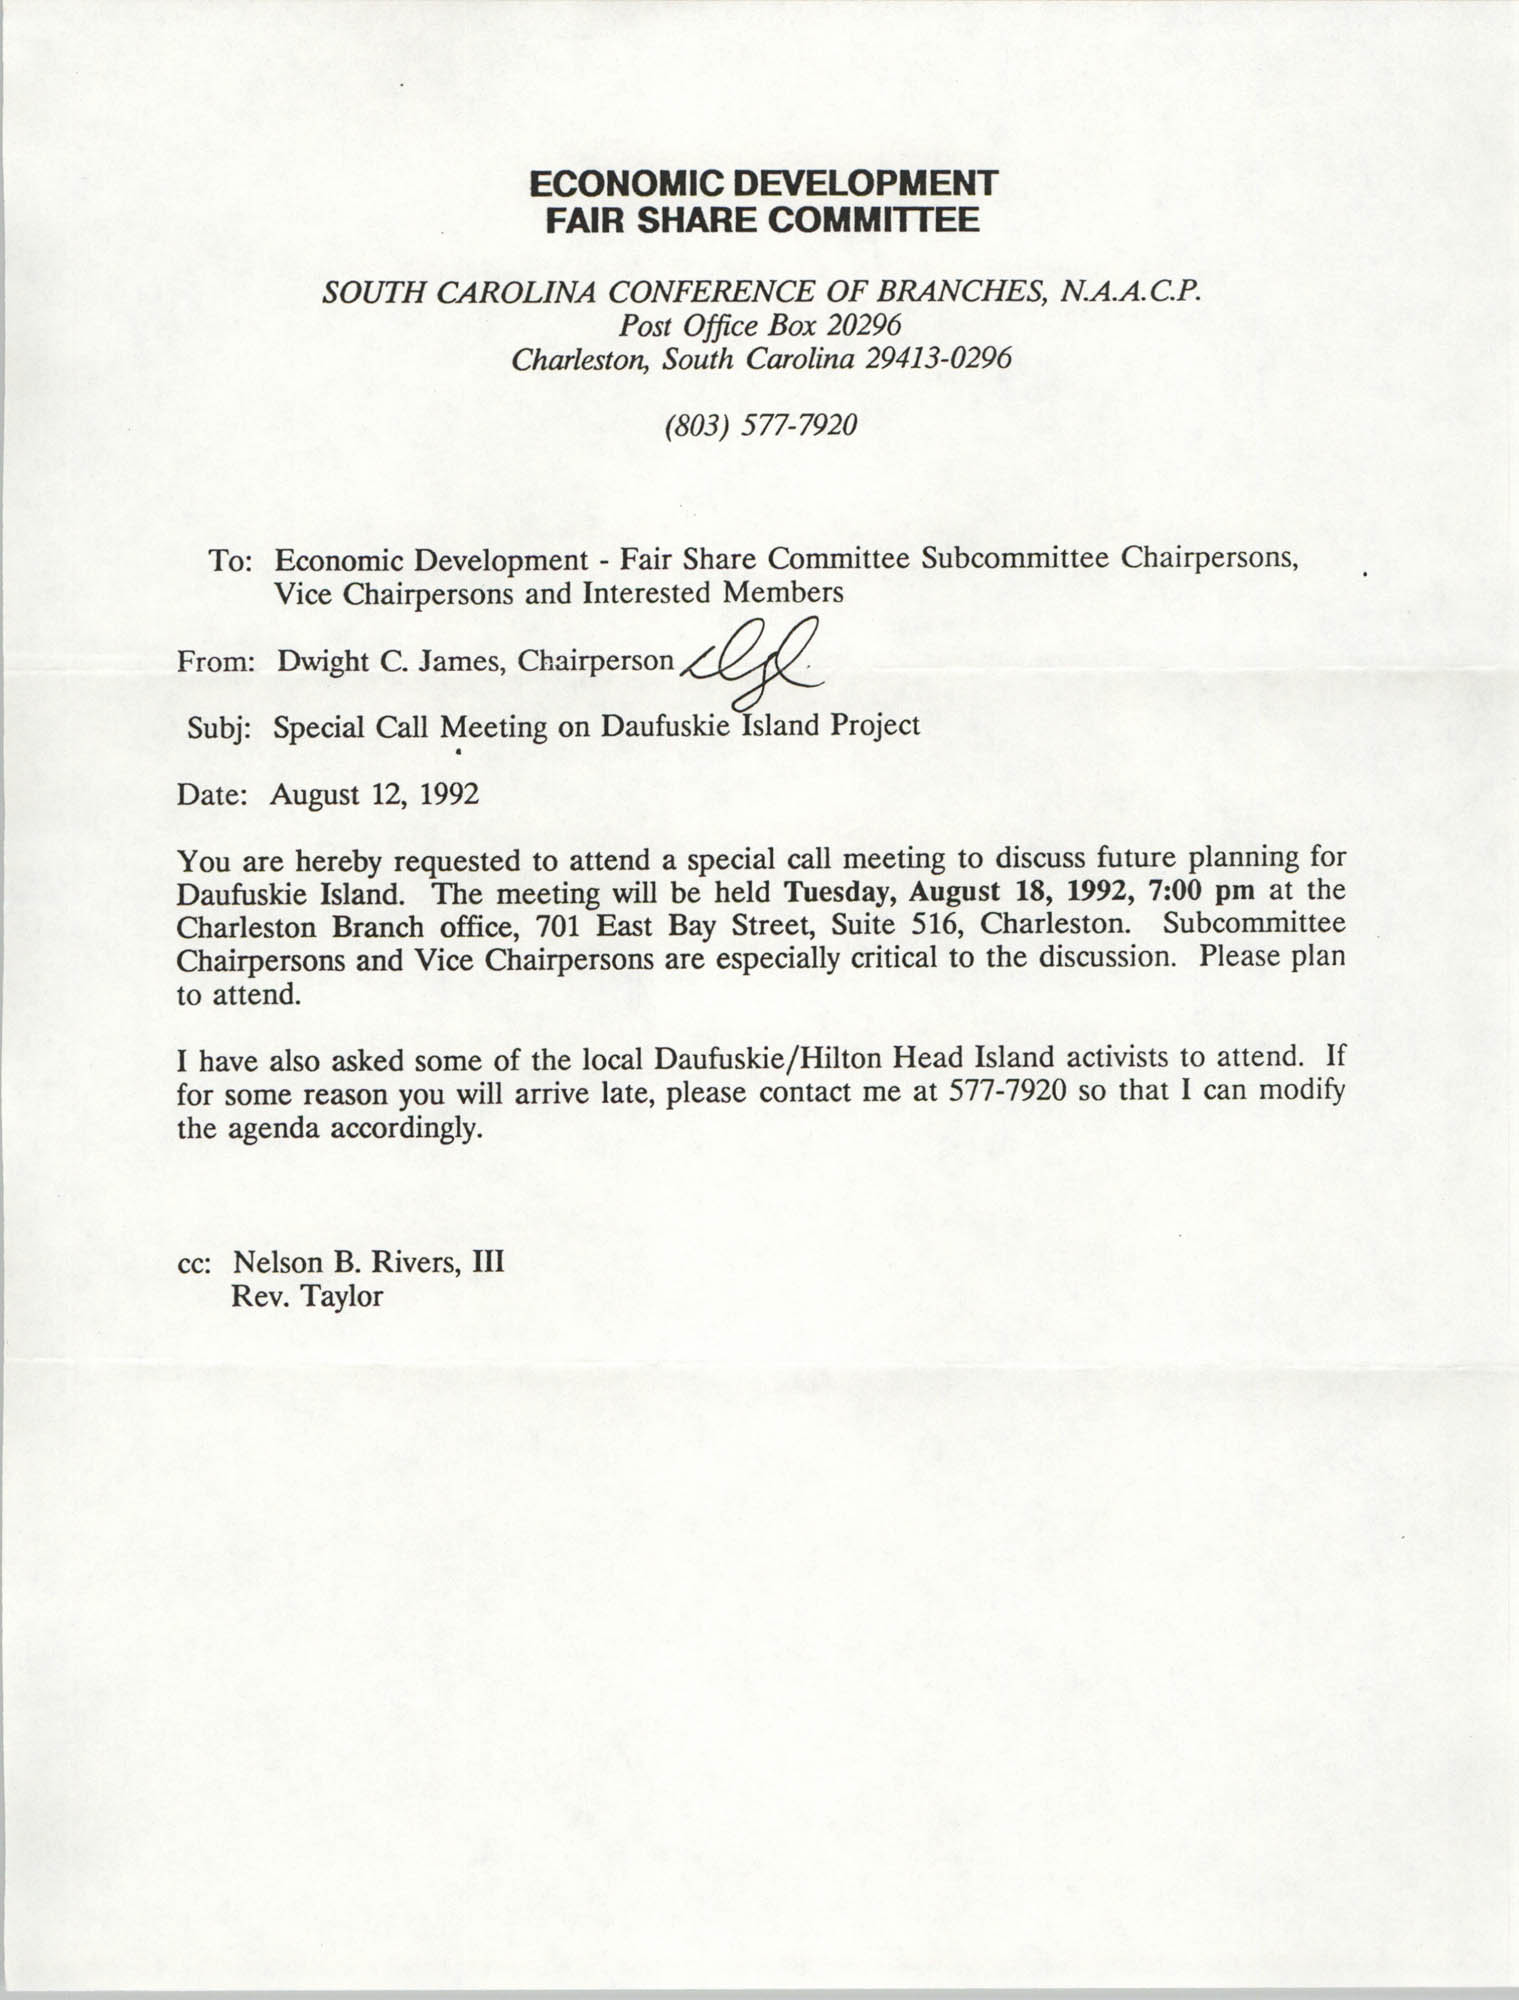 NAACP State Conference and Local Branch Community Development Resource Center Manual, Page 19